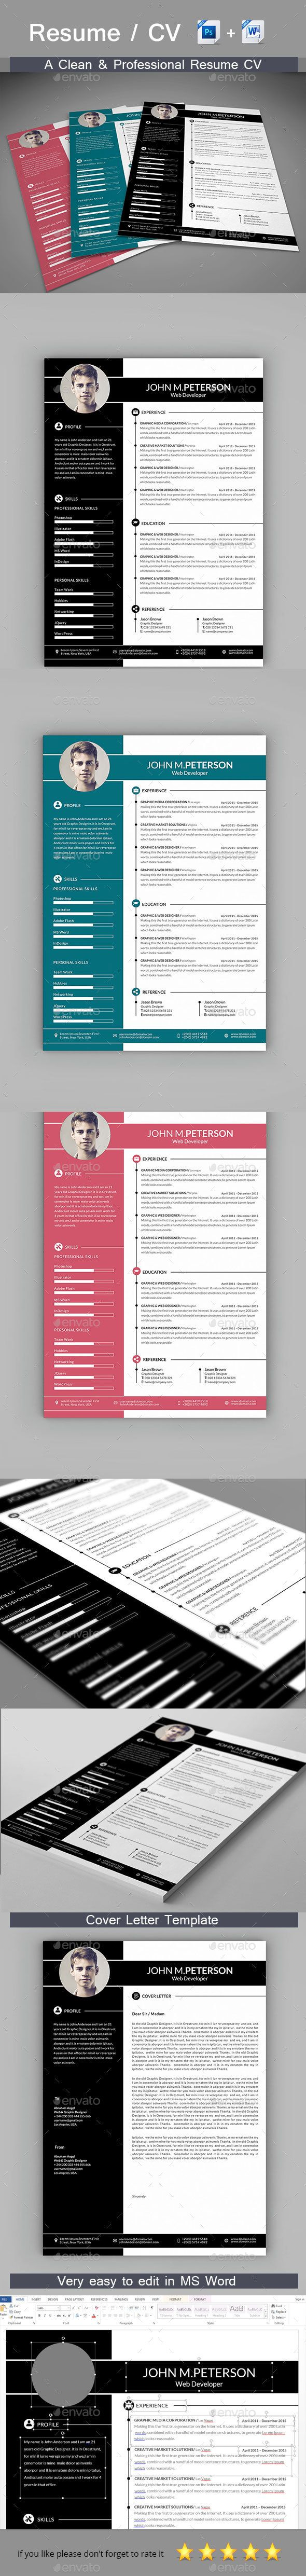 download job resume format%0A  Resume  Resumes Stationery Download here  http   graphicriver net